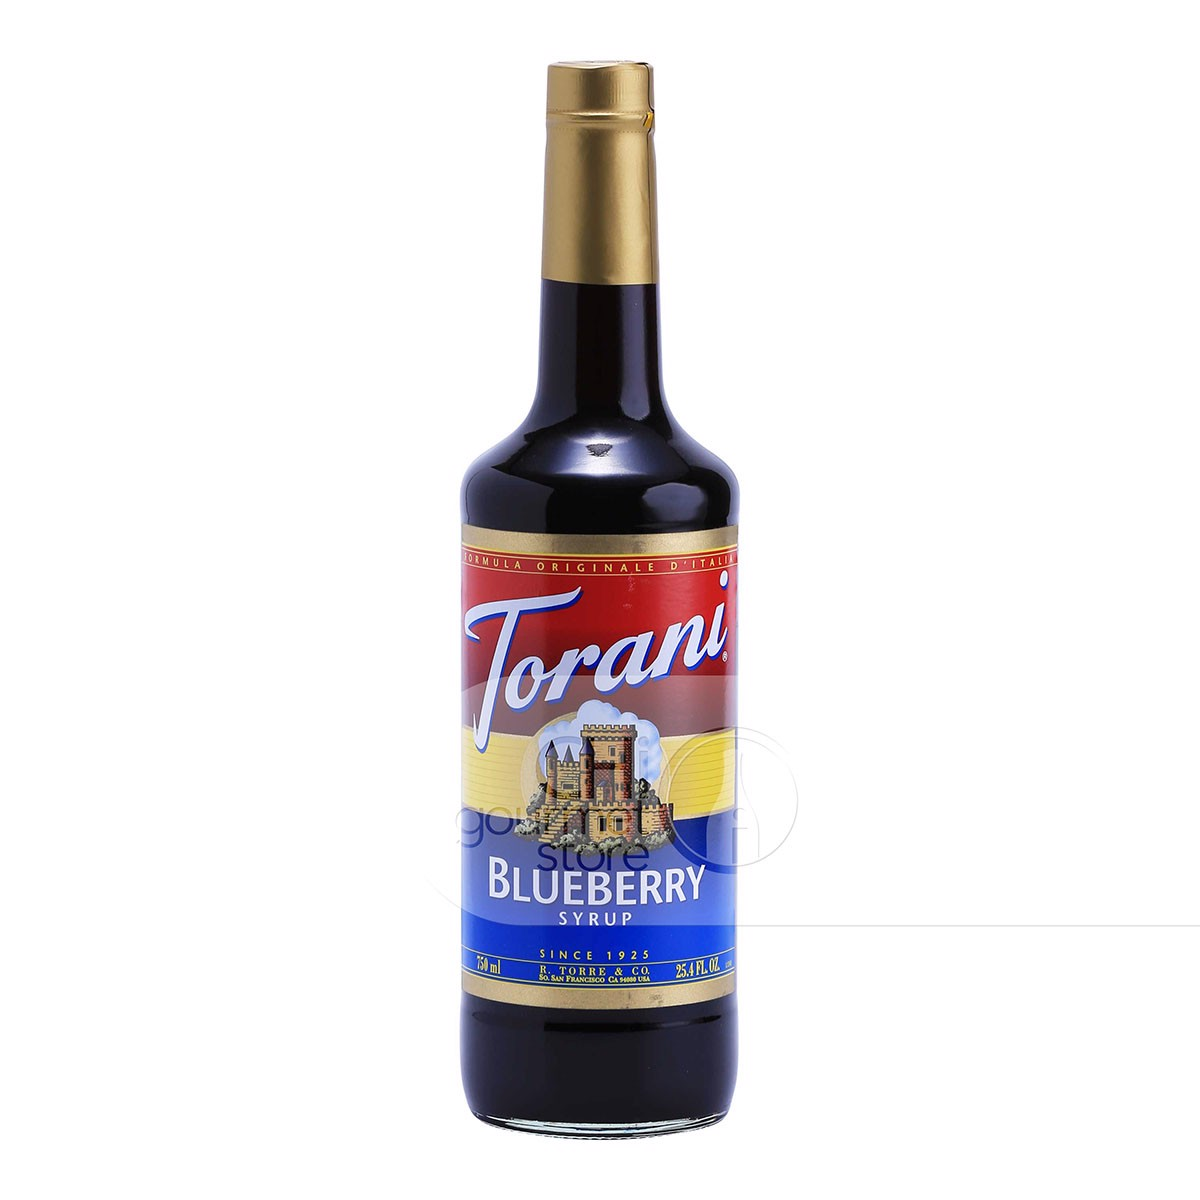 Syrup Blueberry 750ml - Torani